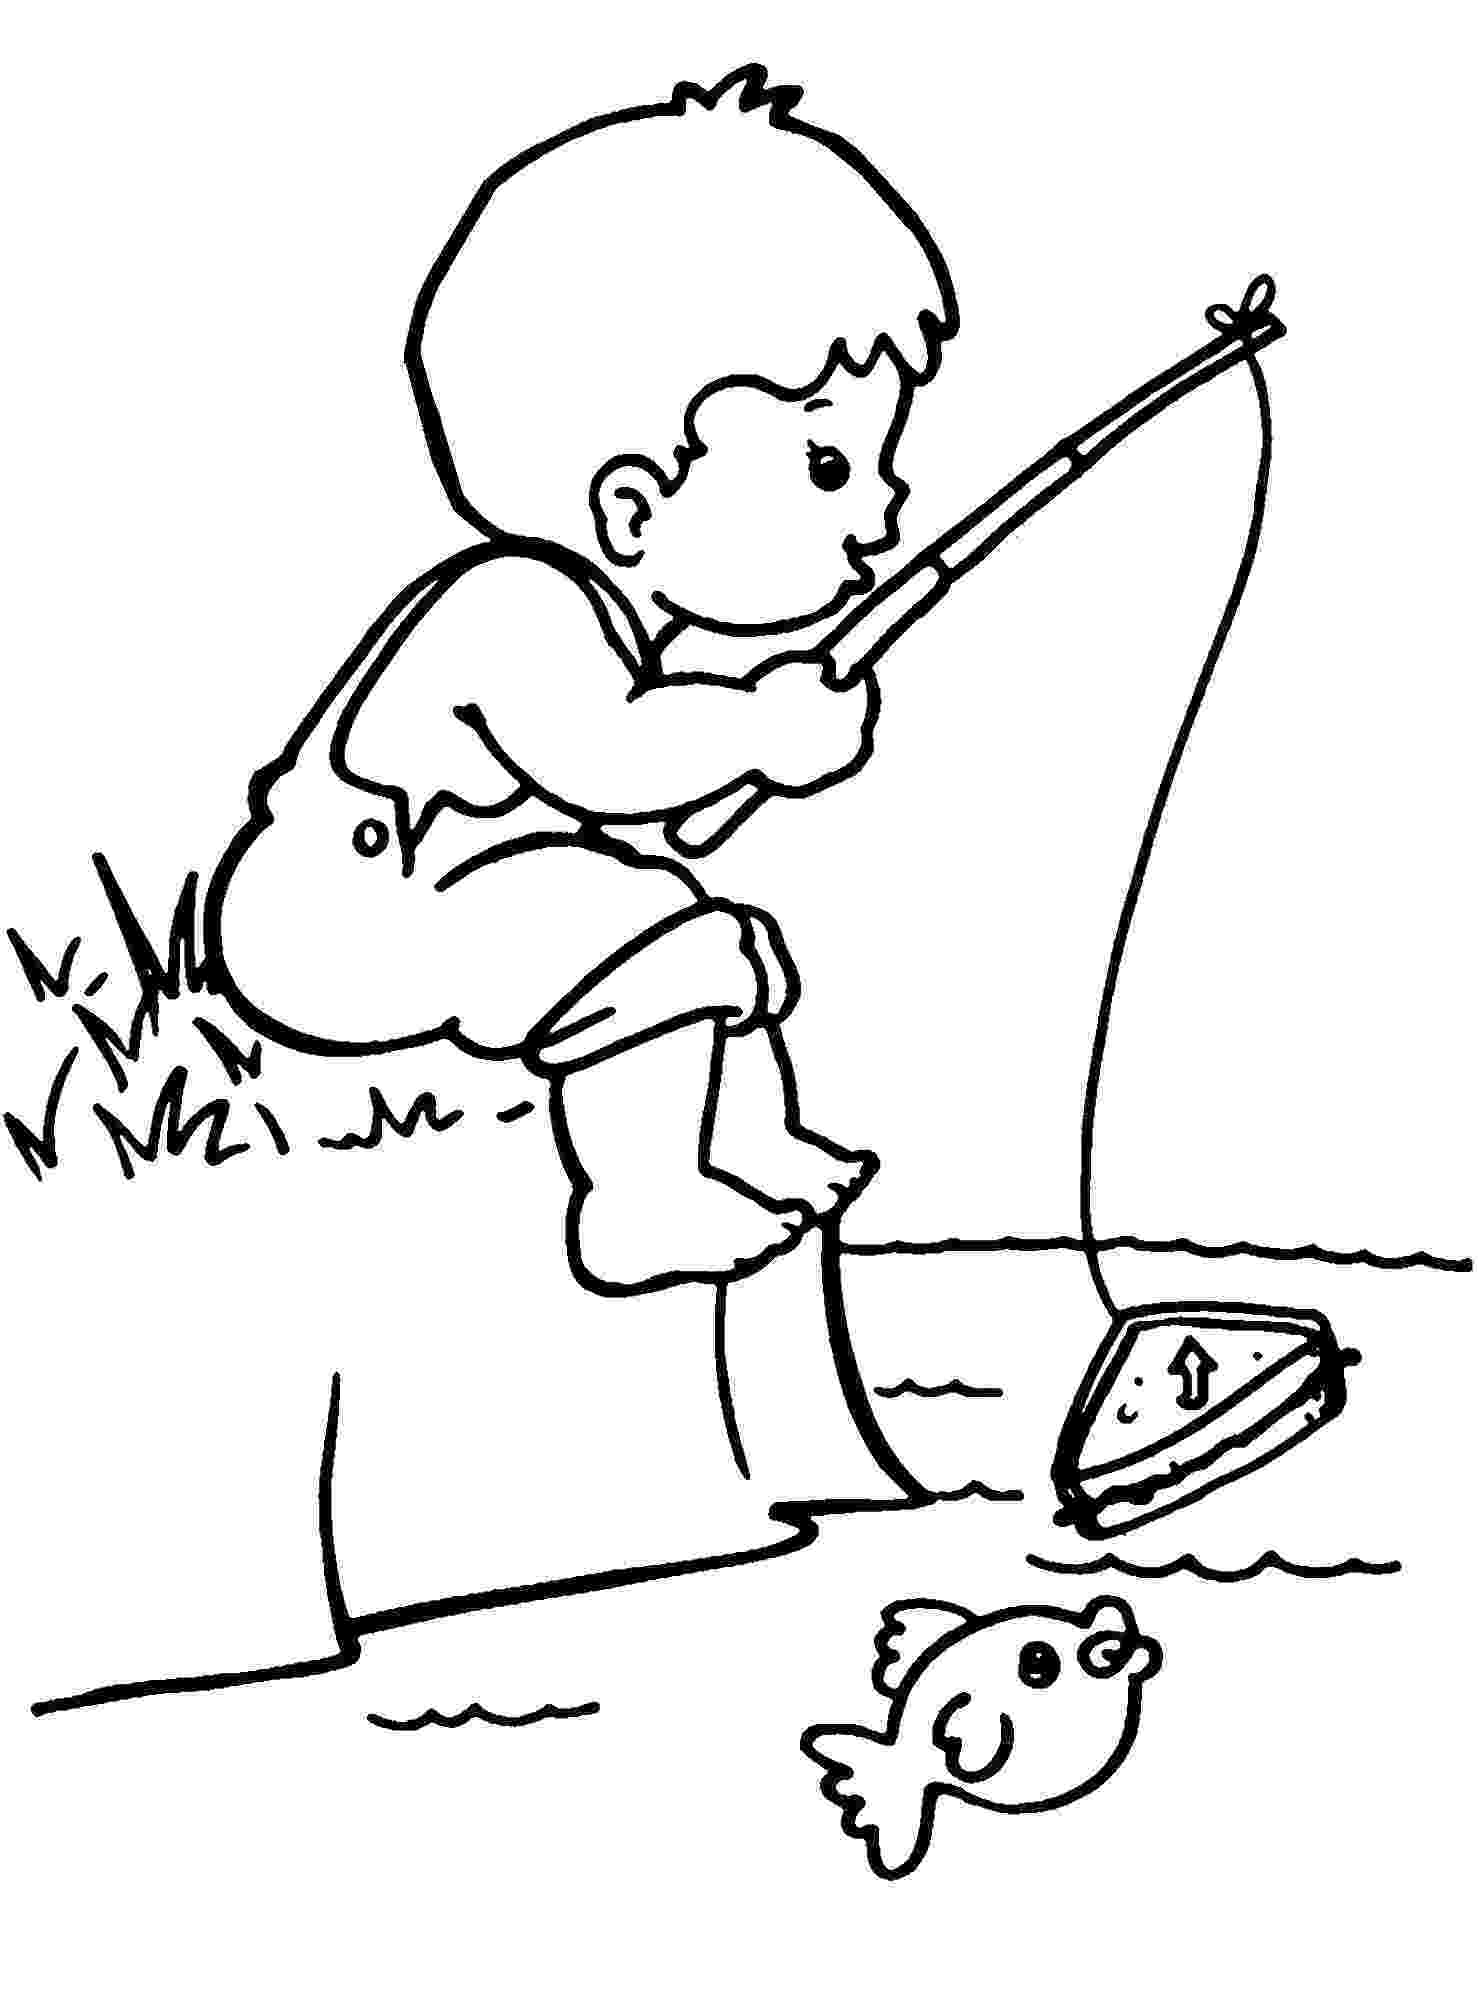 coloring pages of boys free printable boy coloring pages for kids cool2bkids coloring of pages boys